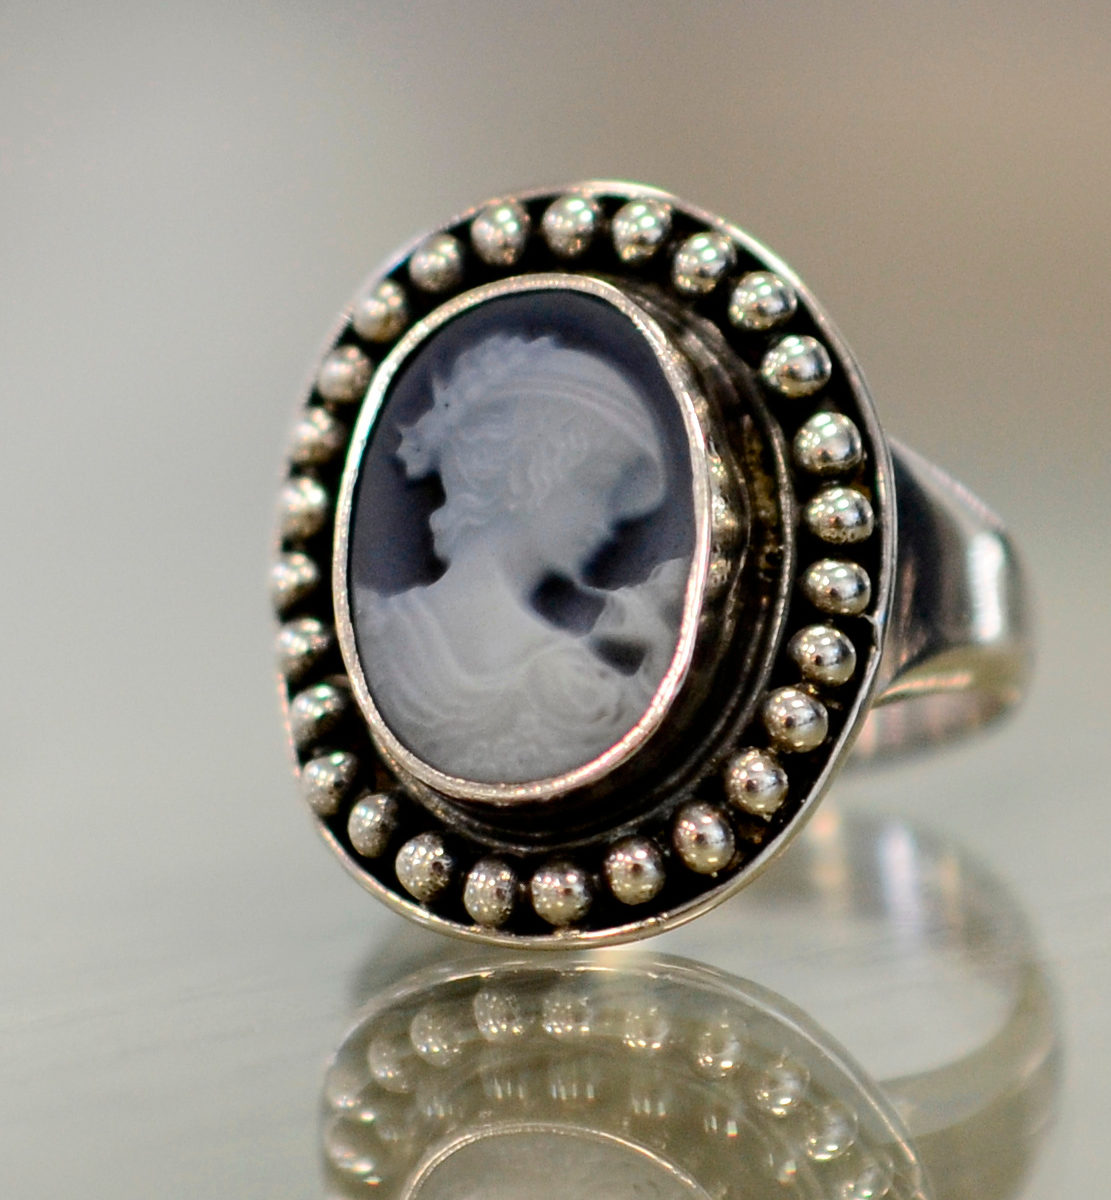 carved agate cameo and sterling silver ring